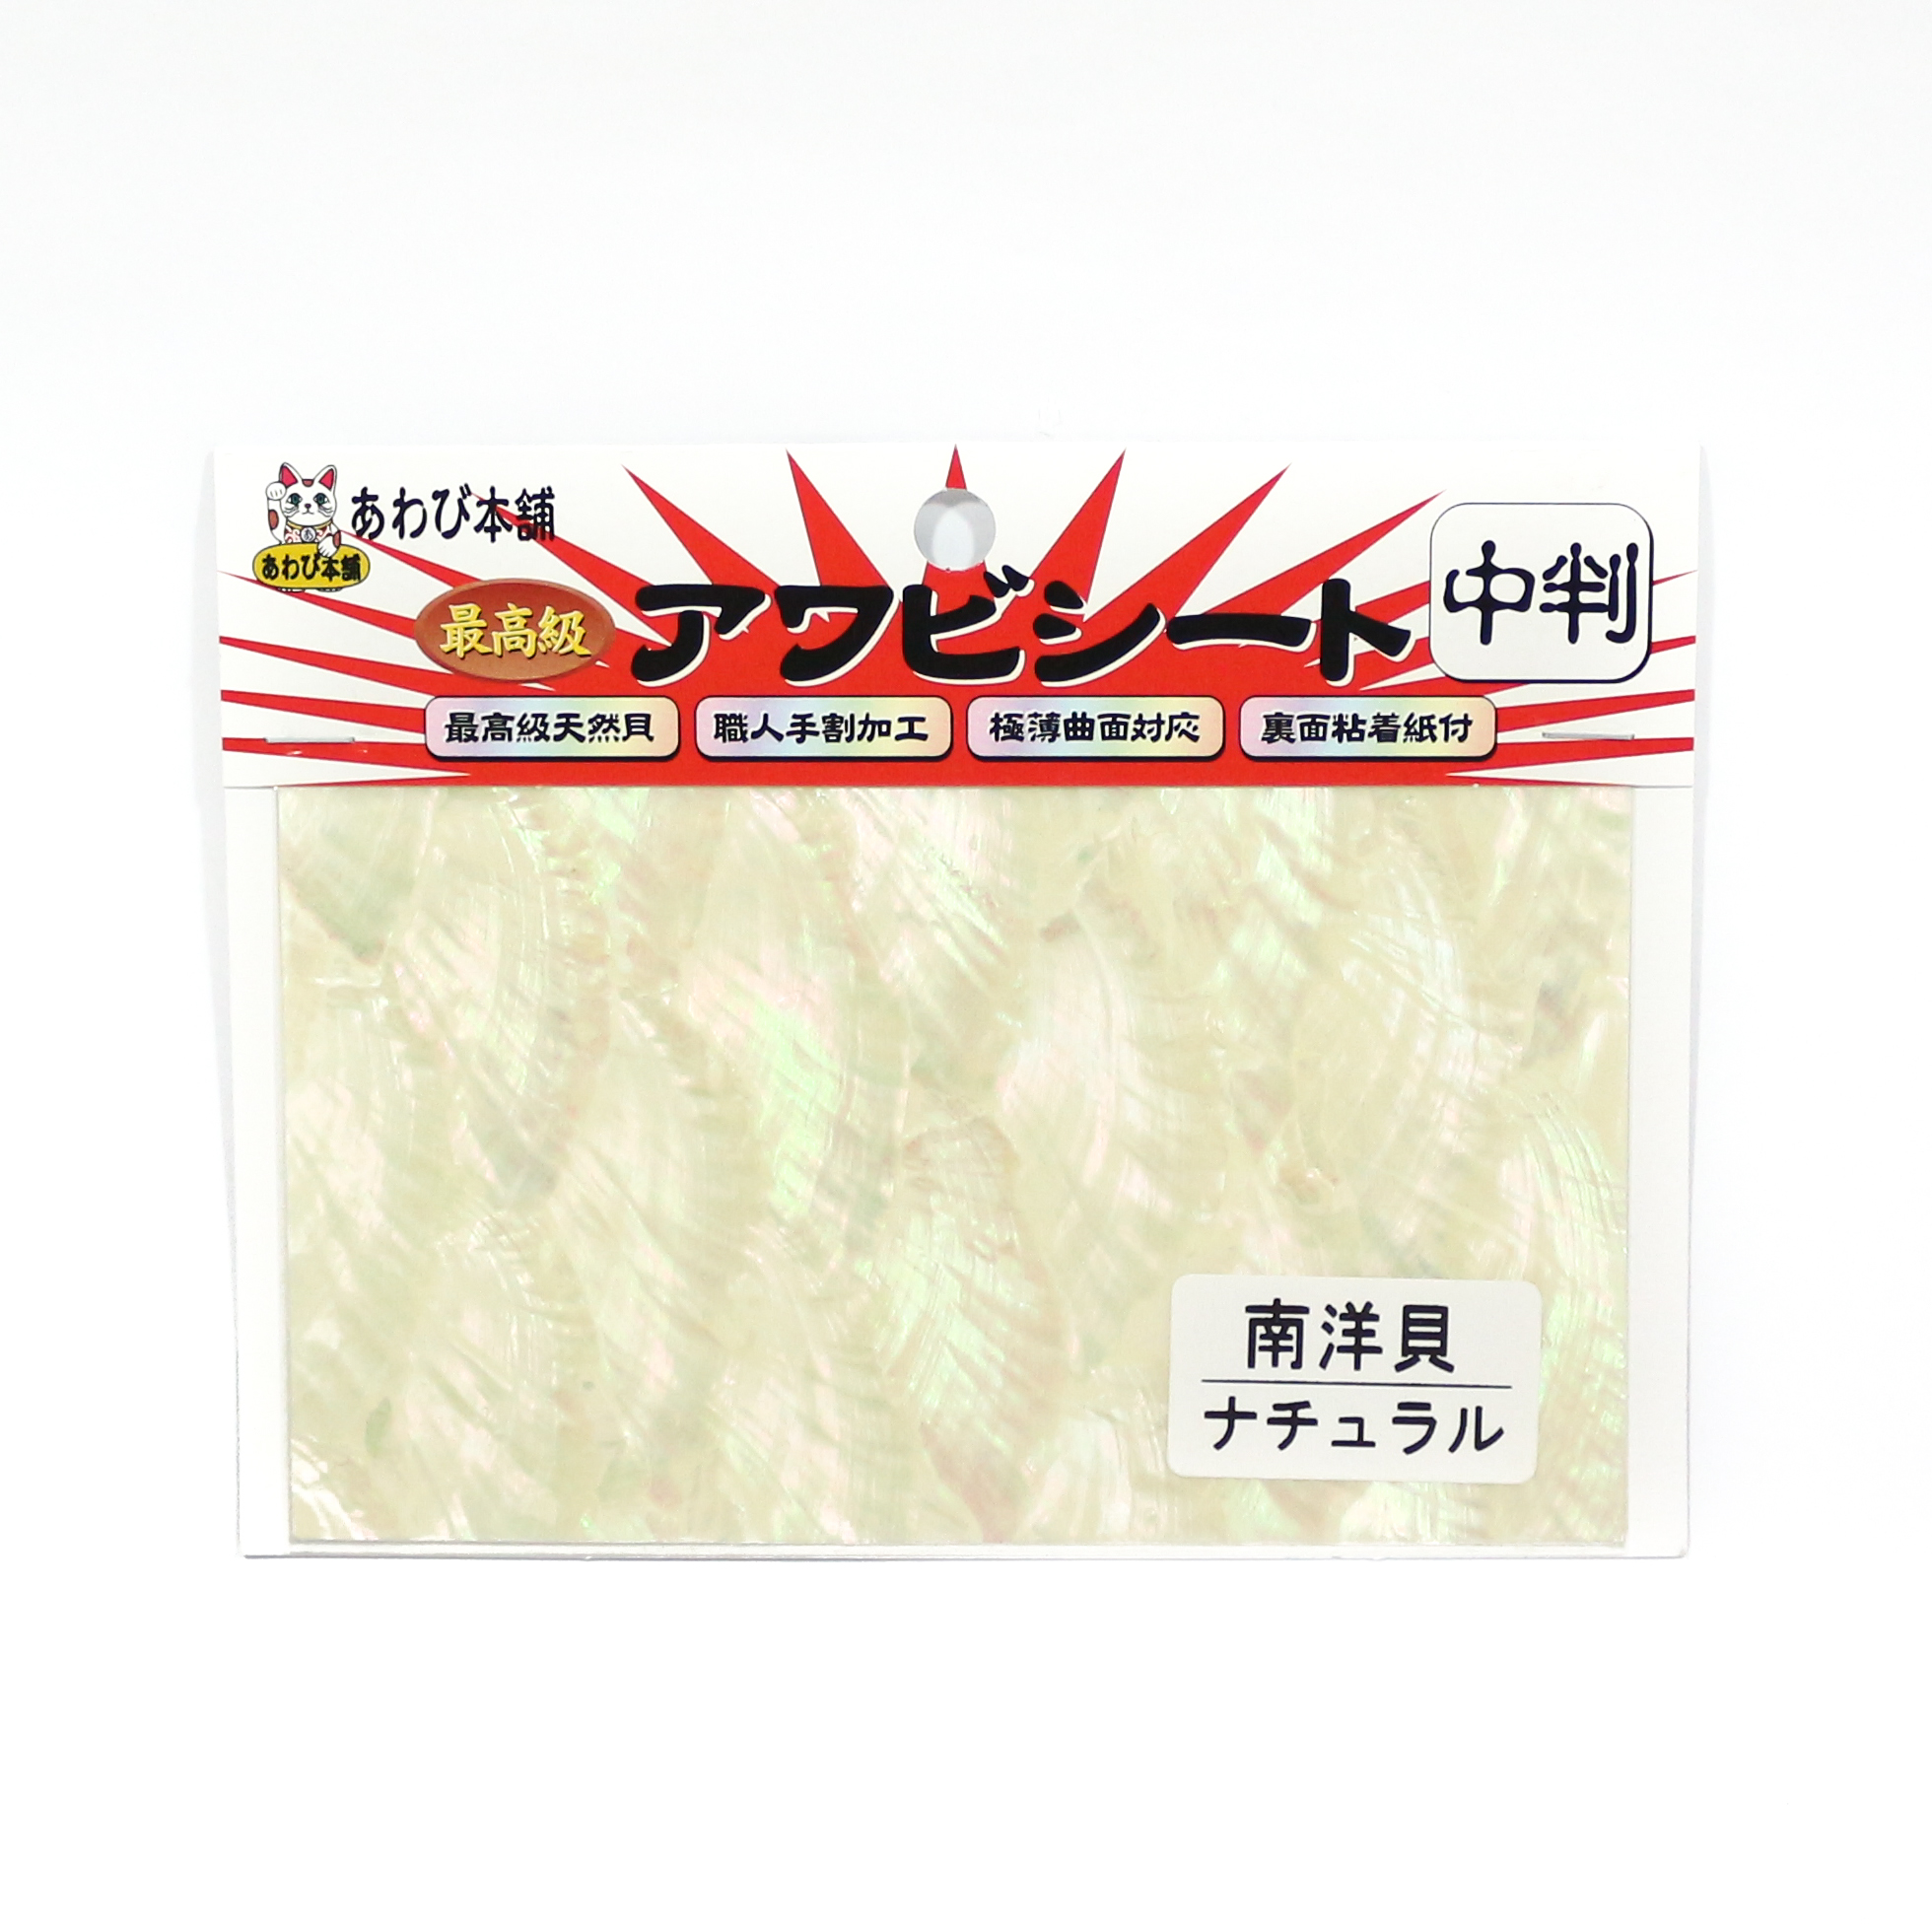 Awabi Honpo Awabi Sheet Size M 80 x 138 mm South Sea Natural (0477)